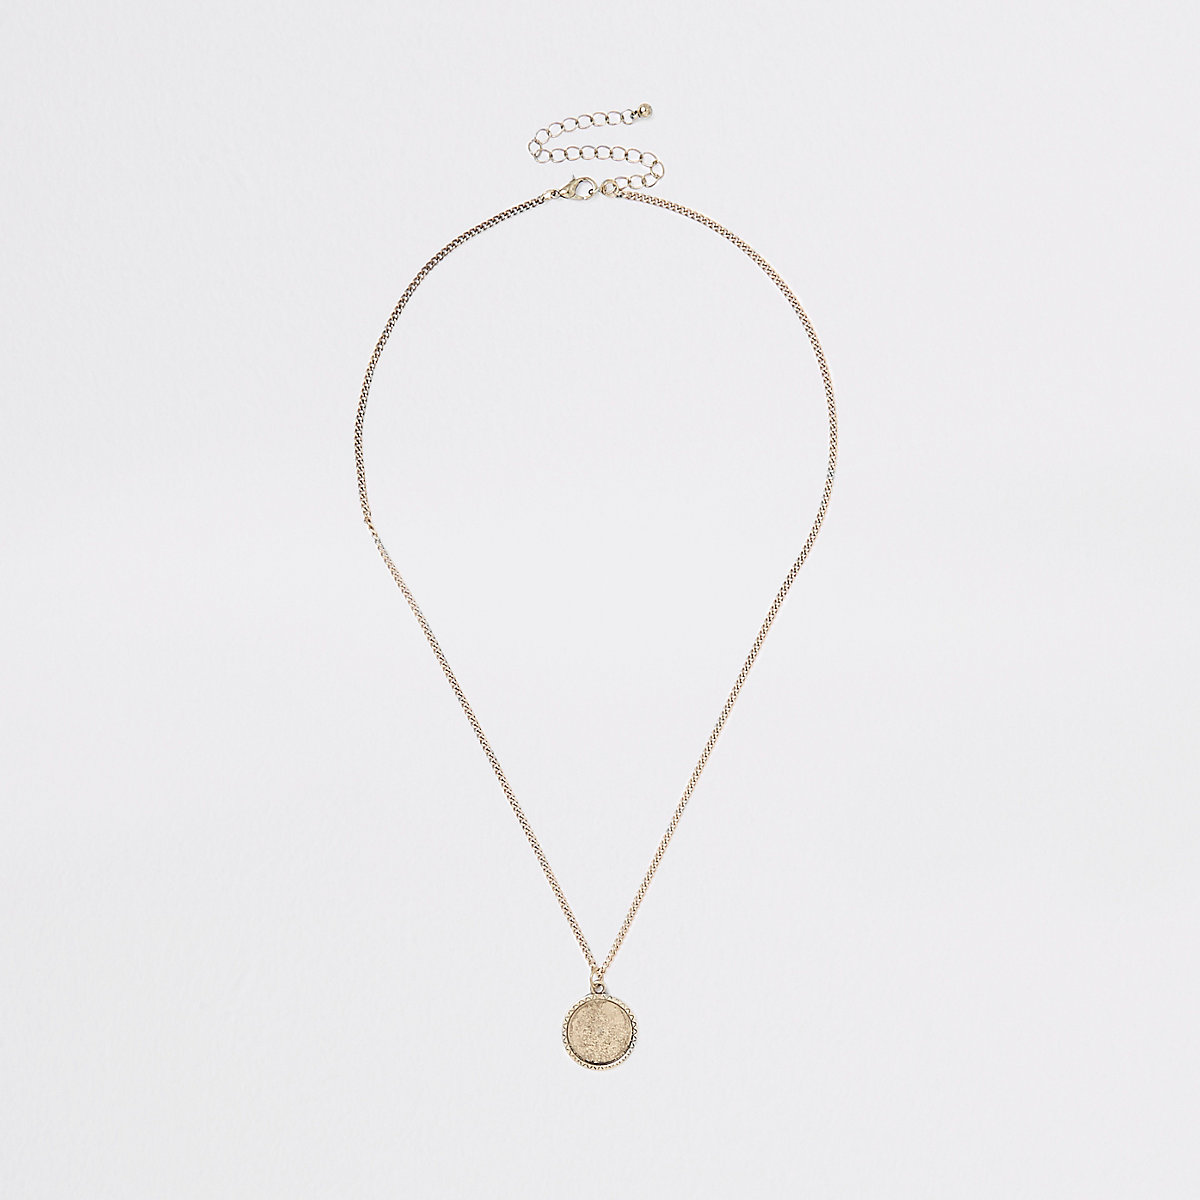 Gold tone textured coin necklace